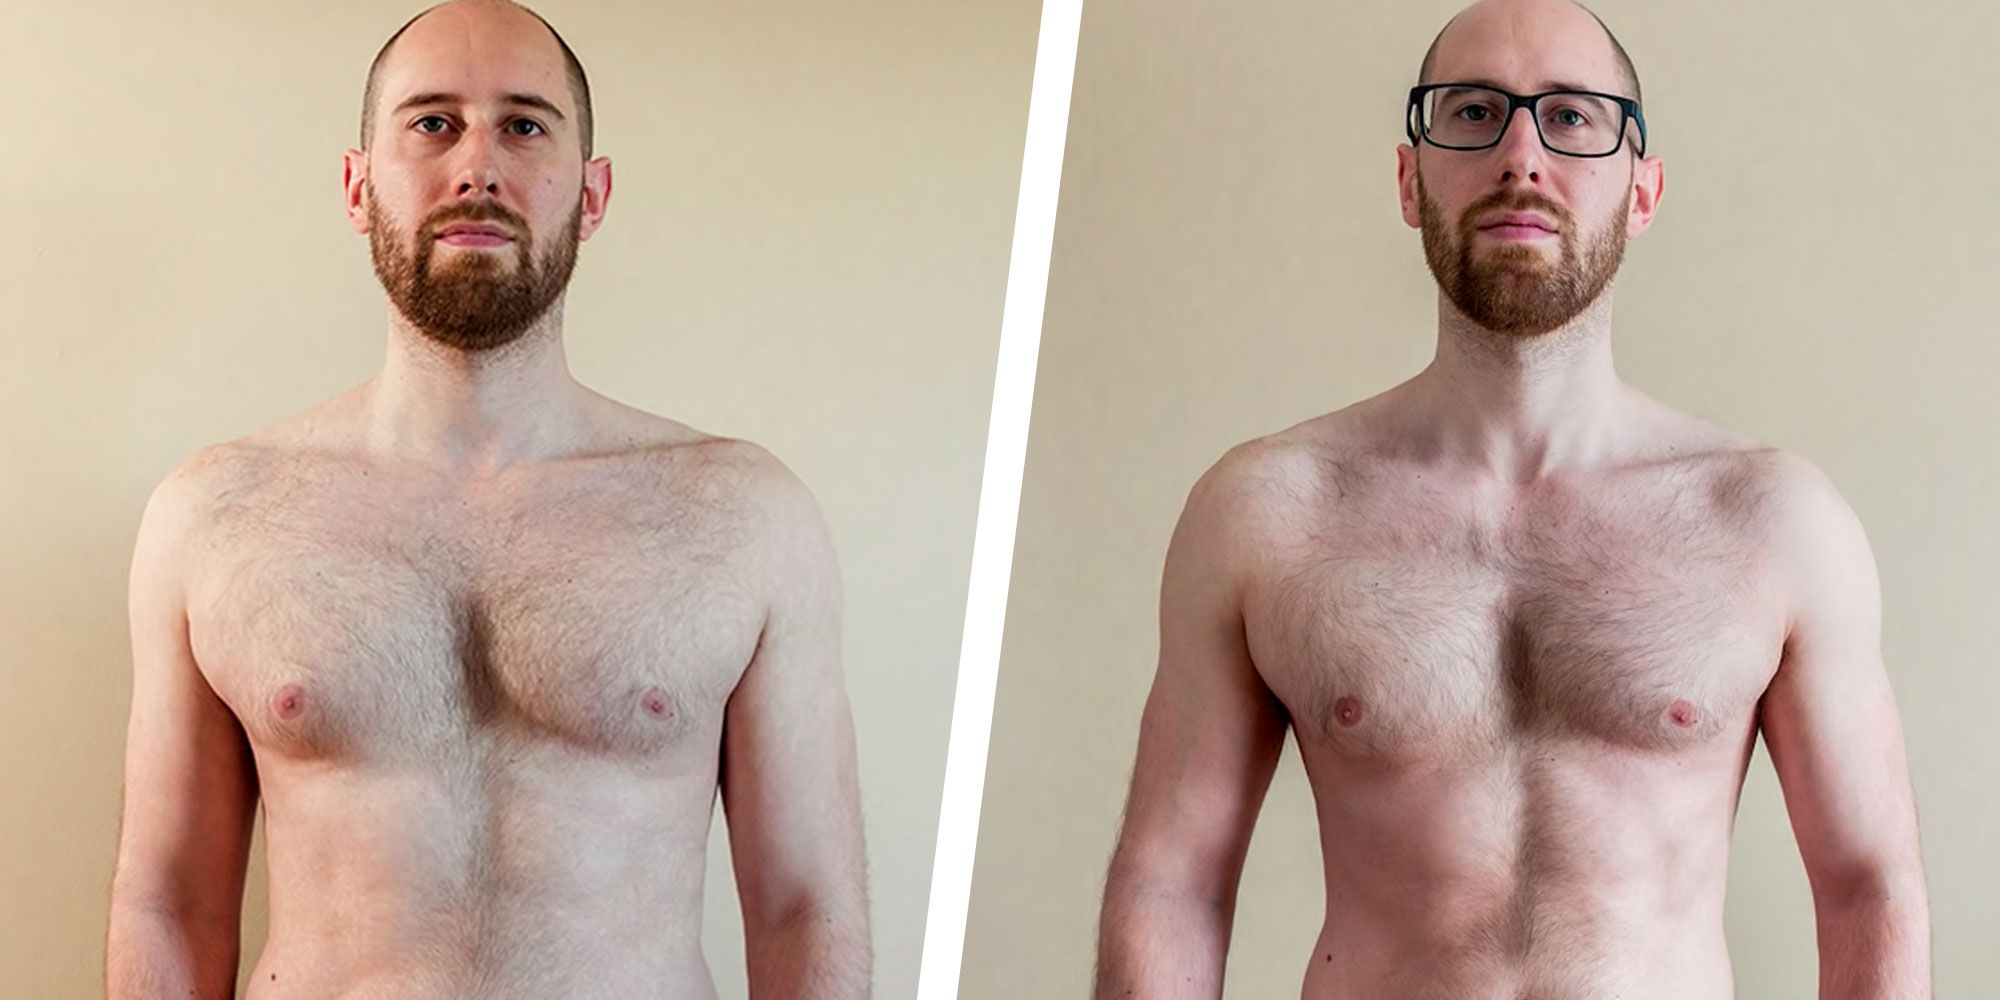 Alternate-Day Fasting Helped This YouTube Star Transform His Body In a Month